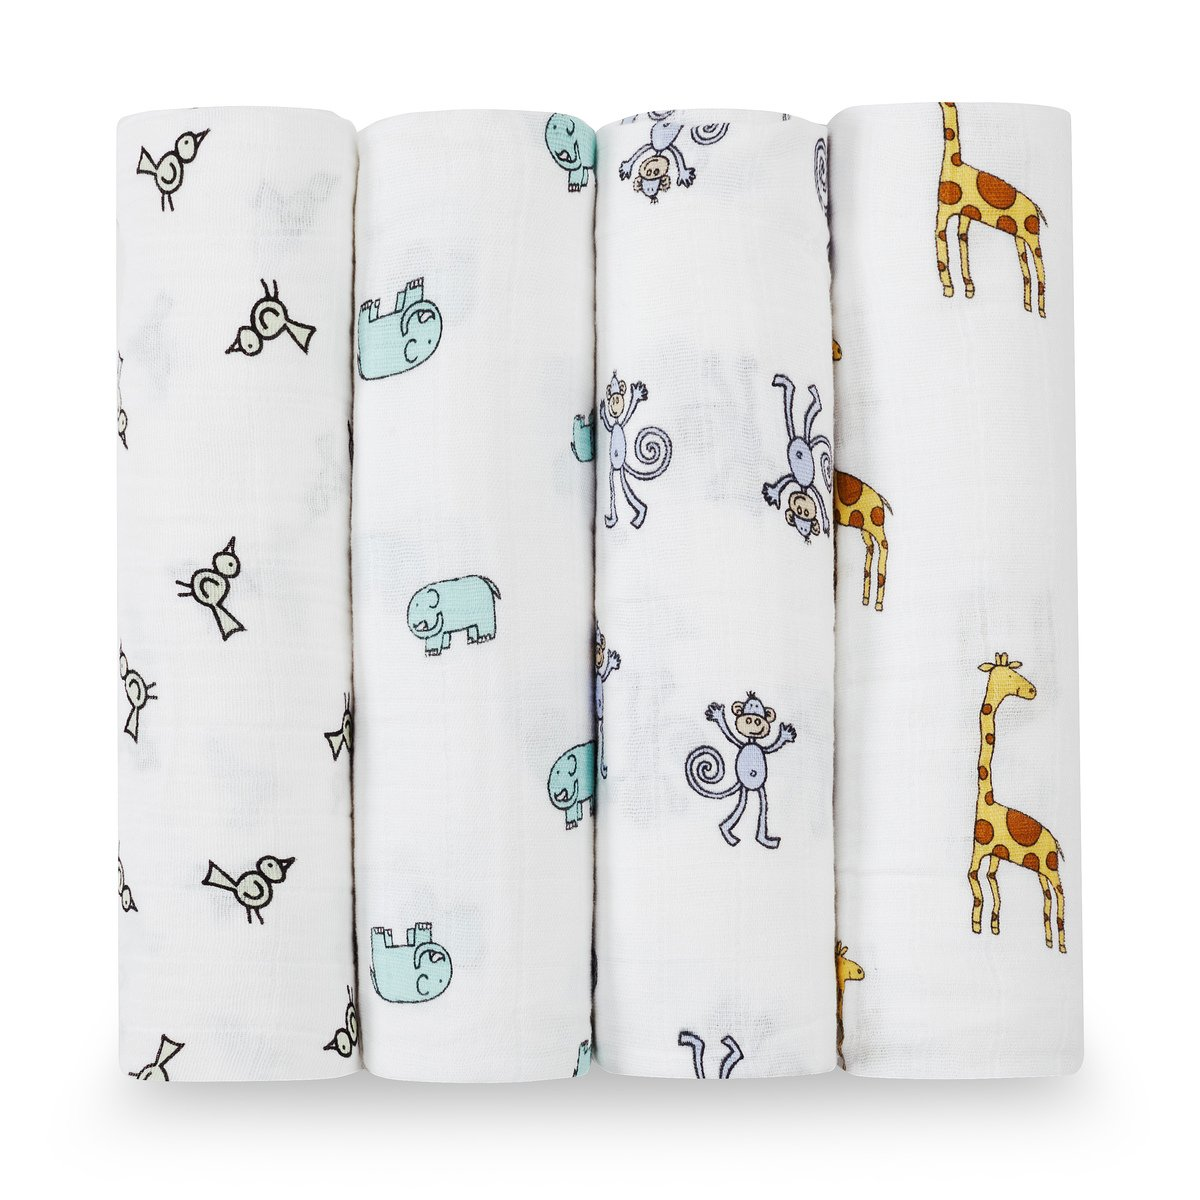 aden + anais Classic Swaddle Baby Blanket, 100% Cotton Muslin, Large 47 X 47 inch, 4 pack, Jungle Jam, Giraffe / Monkey / Elephant